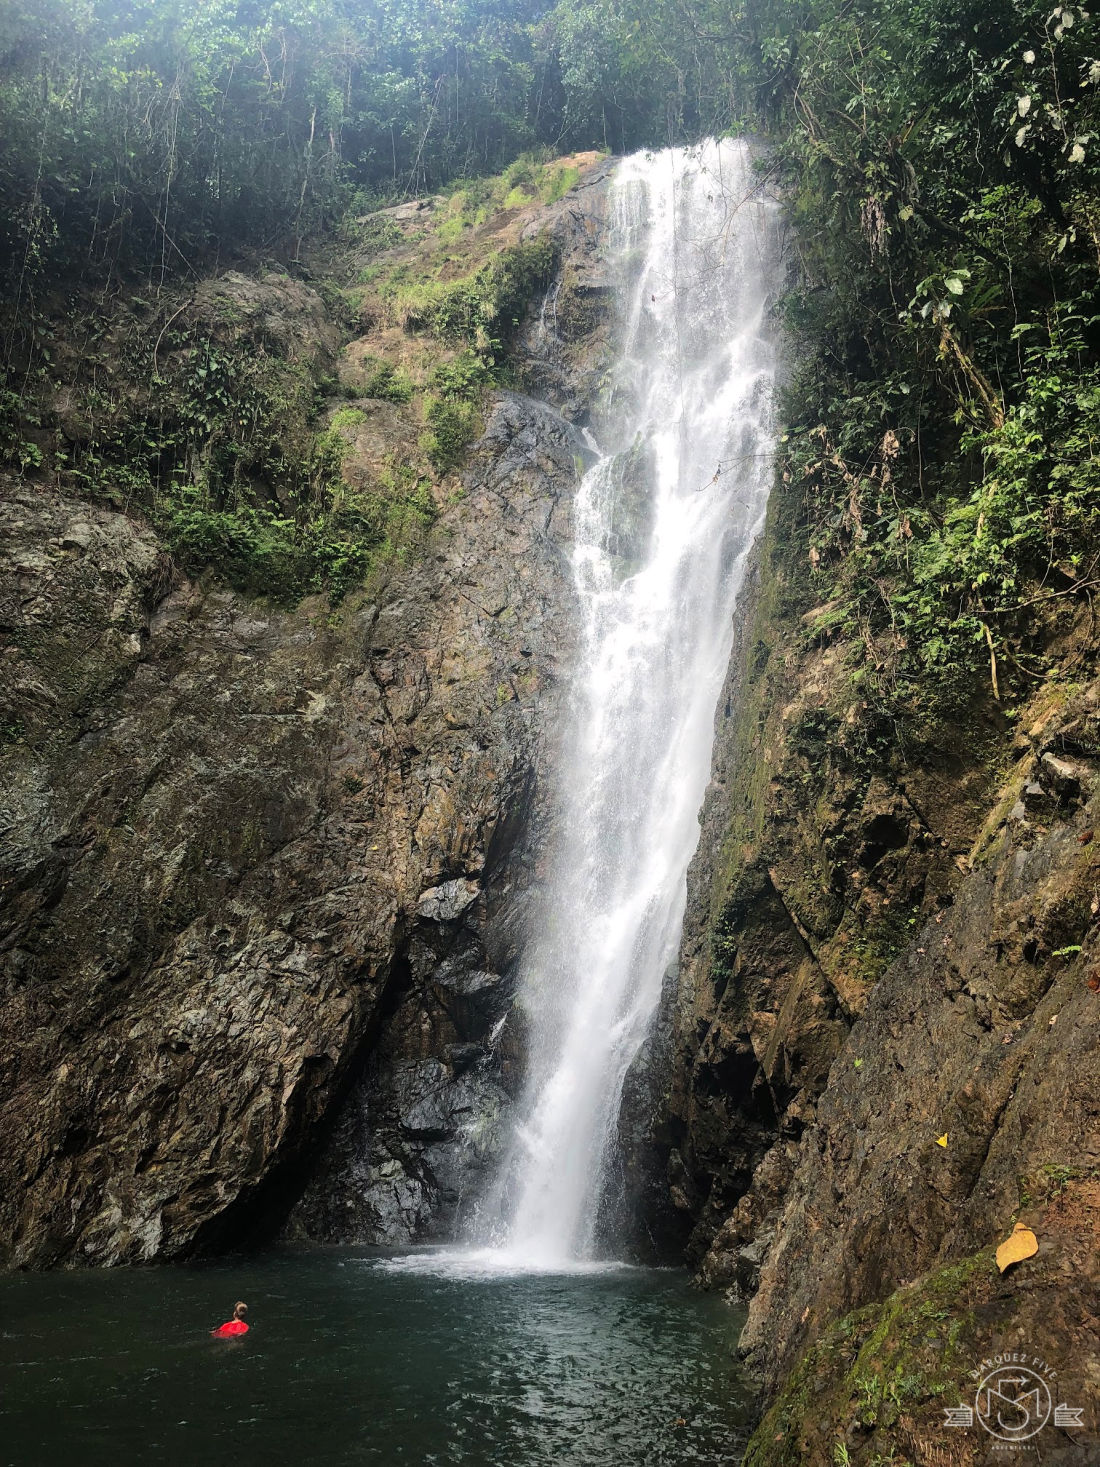 We had so much fun swimming near this waterfall and jumping from the rocks!